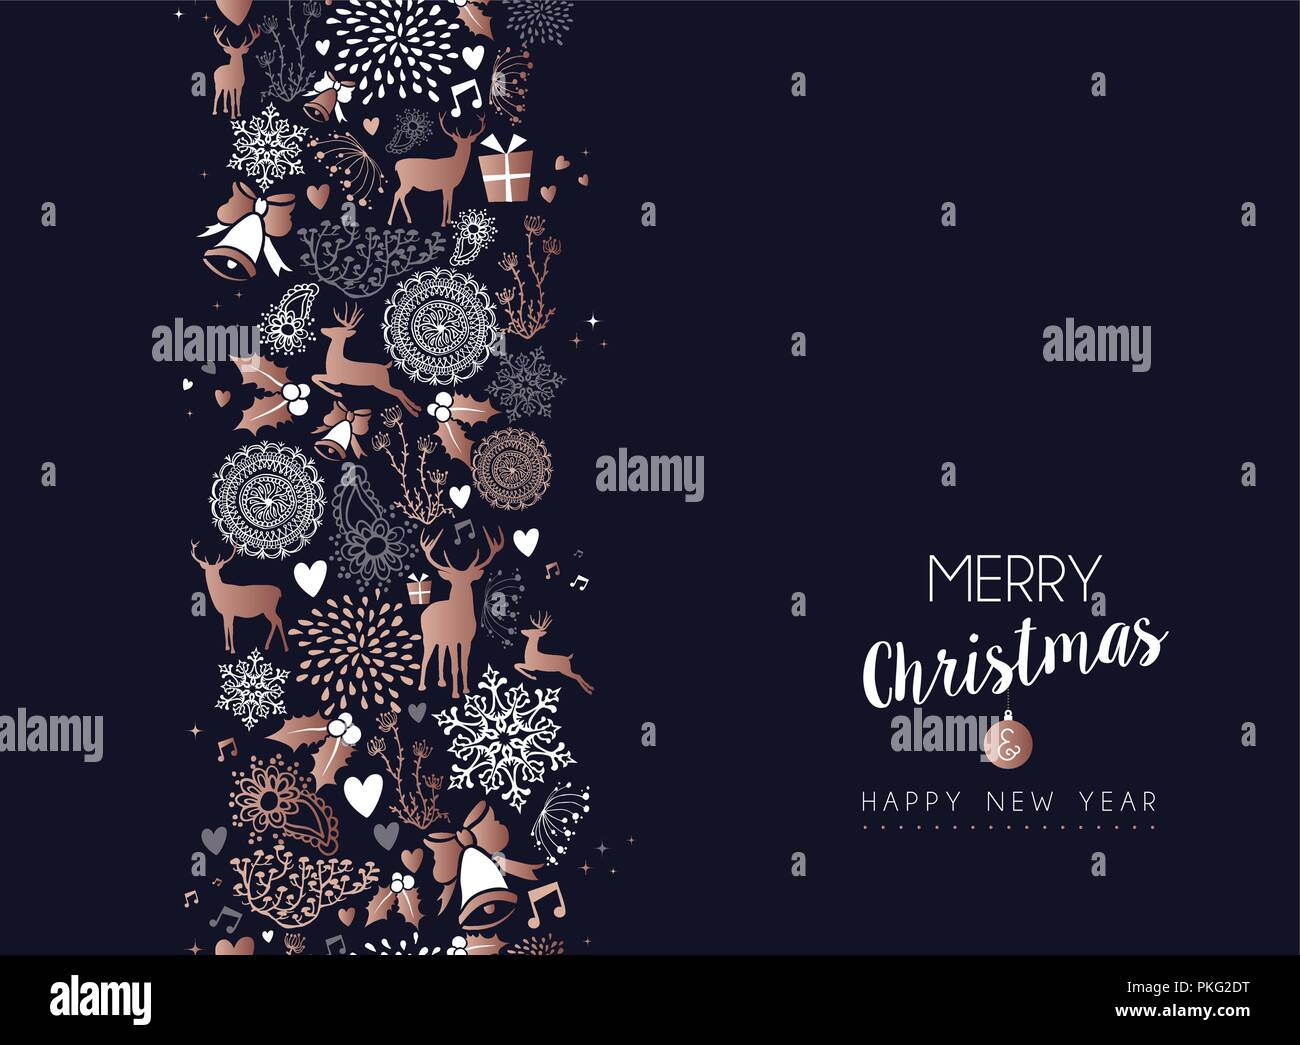 merry christmas happy new year copper pattern decoration with deer nature and holiday ornaments eps10 vector